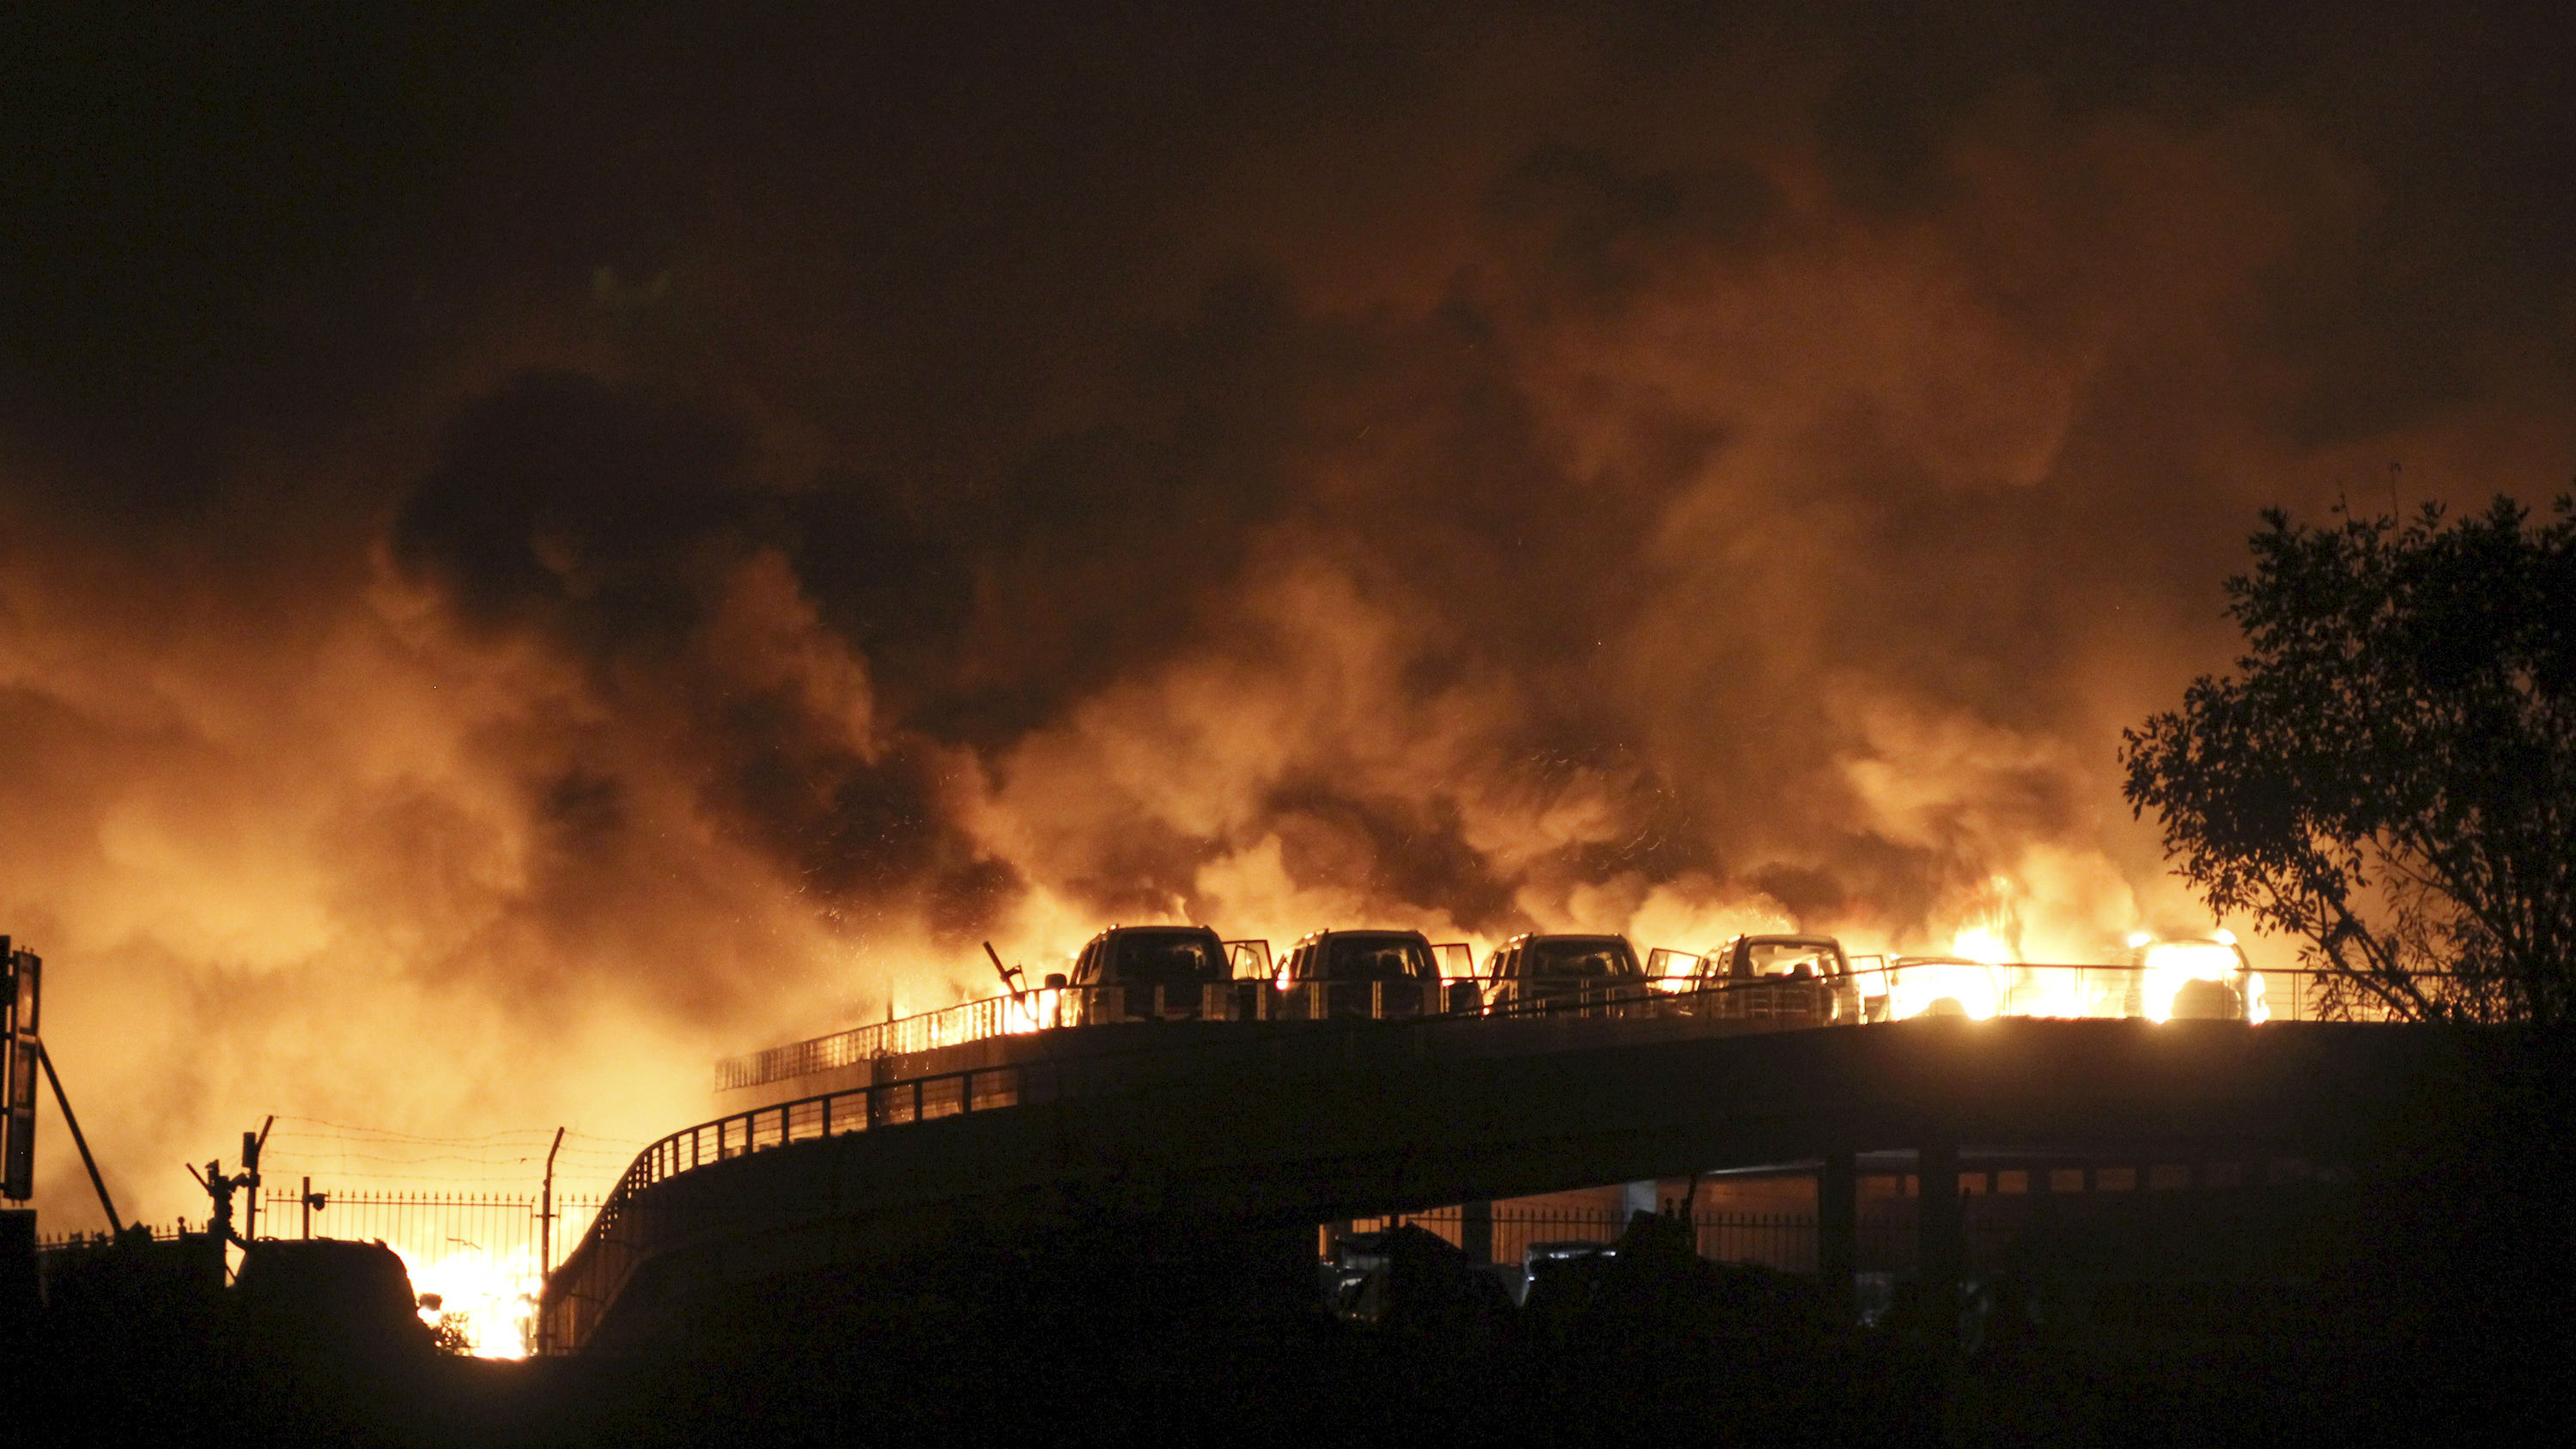 Vehicles are seen burning after blasts at Binhai new district in Tianjin municipality, China, August 13, 2015. Huge explosions hit an industrial area in the northeast Chinese port city of Tianjin, triggering a blast wave felt kilometers away and injuring scores of people, Chinese media reported.